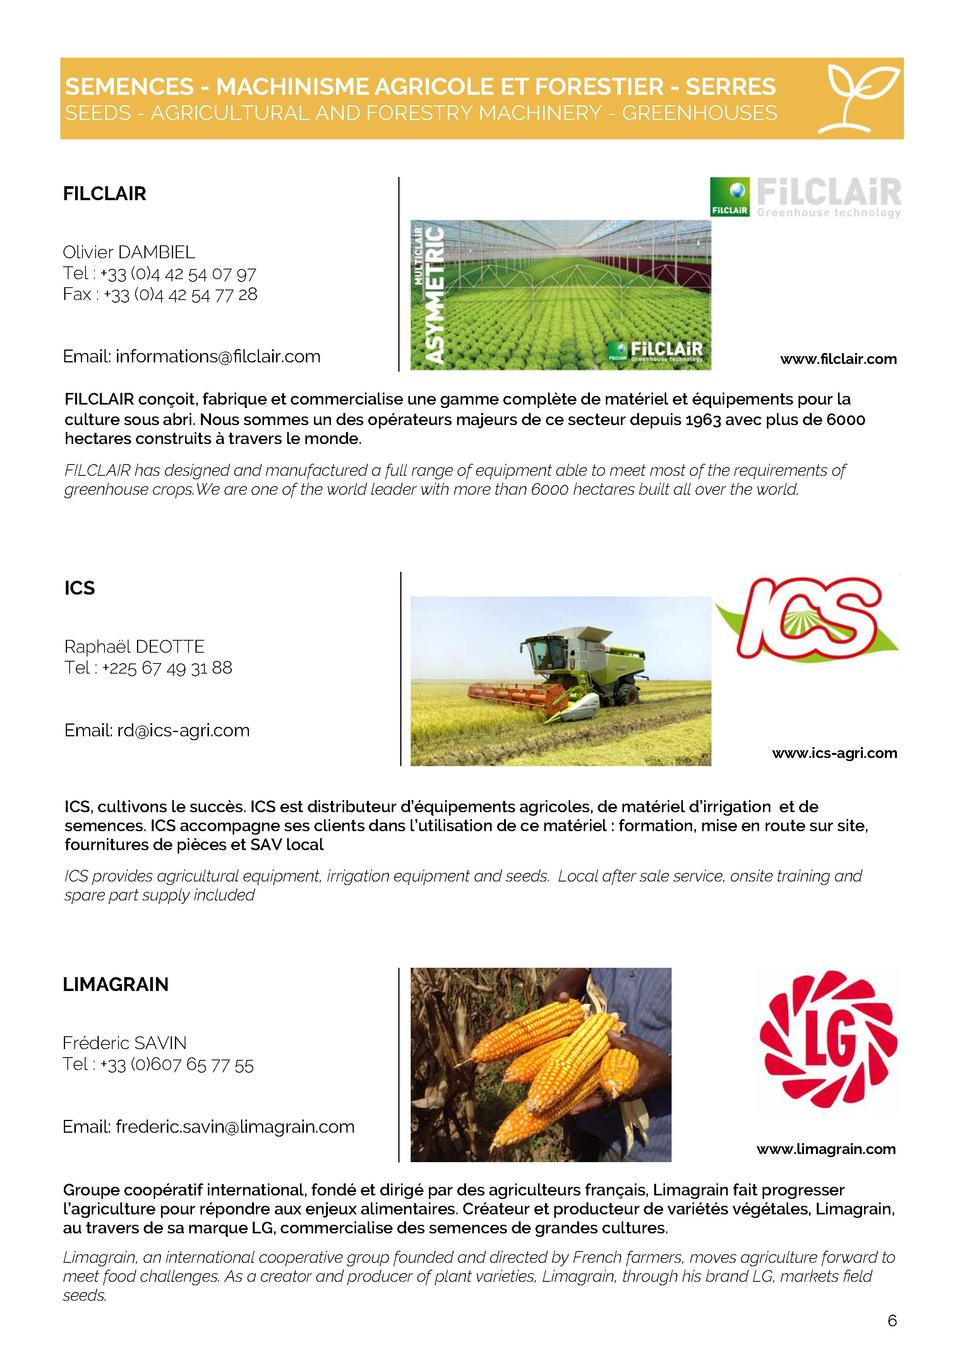 SEMENCES - MACHINISME AGRICOLE ET FORESTIER - SERRES  SEEDS - AGRICULTURAL AND FORESTRY MACHINERY - GREENHOUSES  FILCLAIR ...